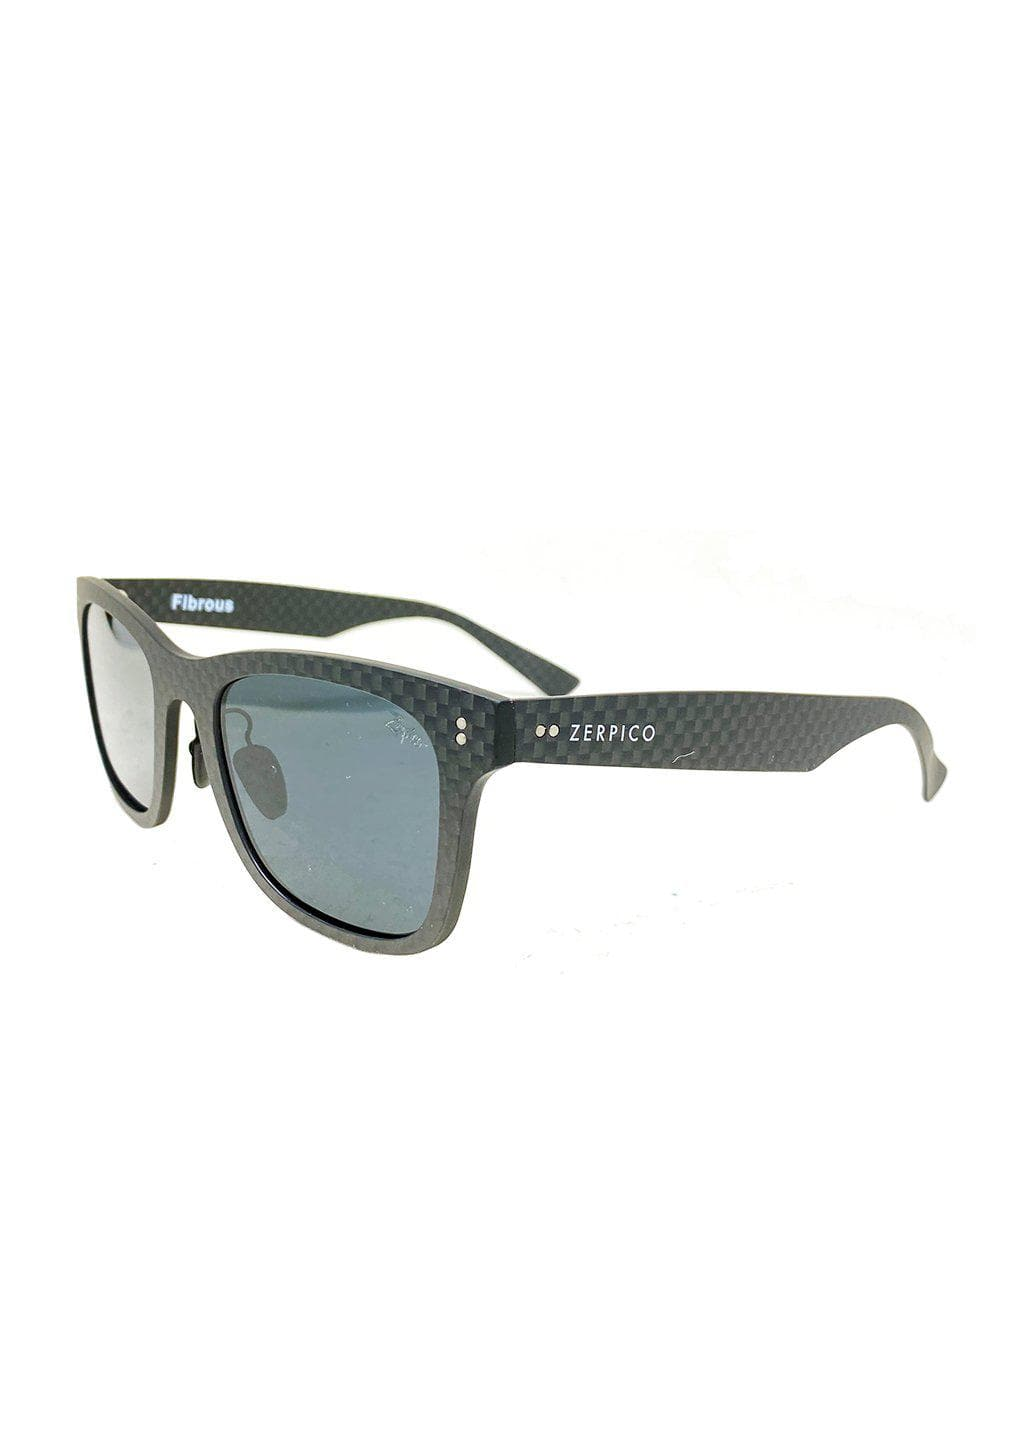 Carbon Fiber Sunglasses - Fibrous V4, full carbon fiber sunglasses.